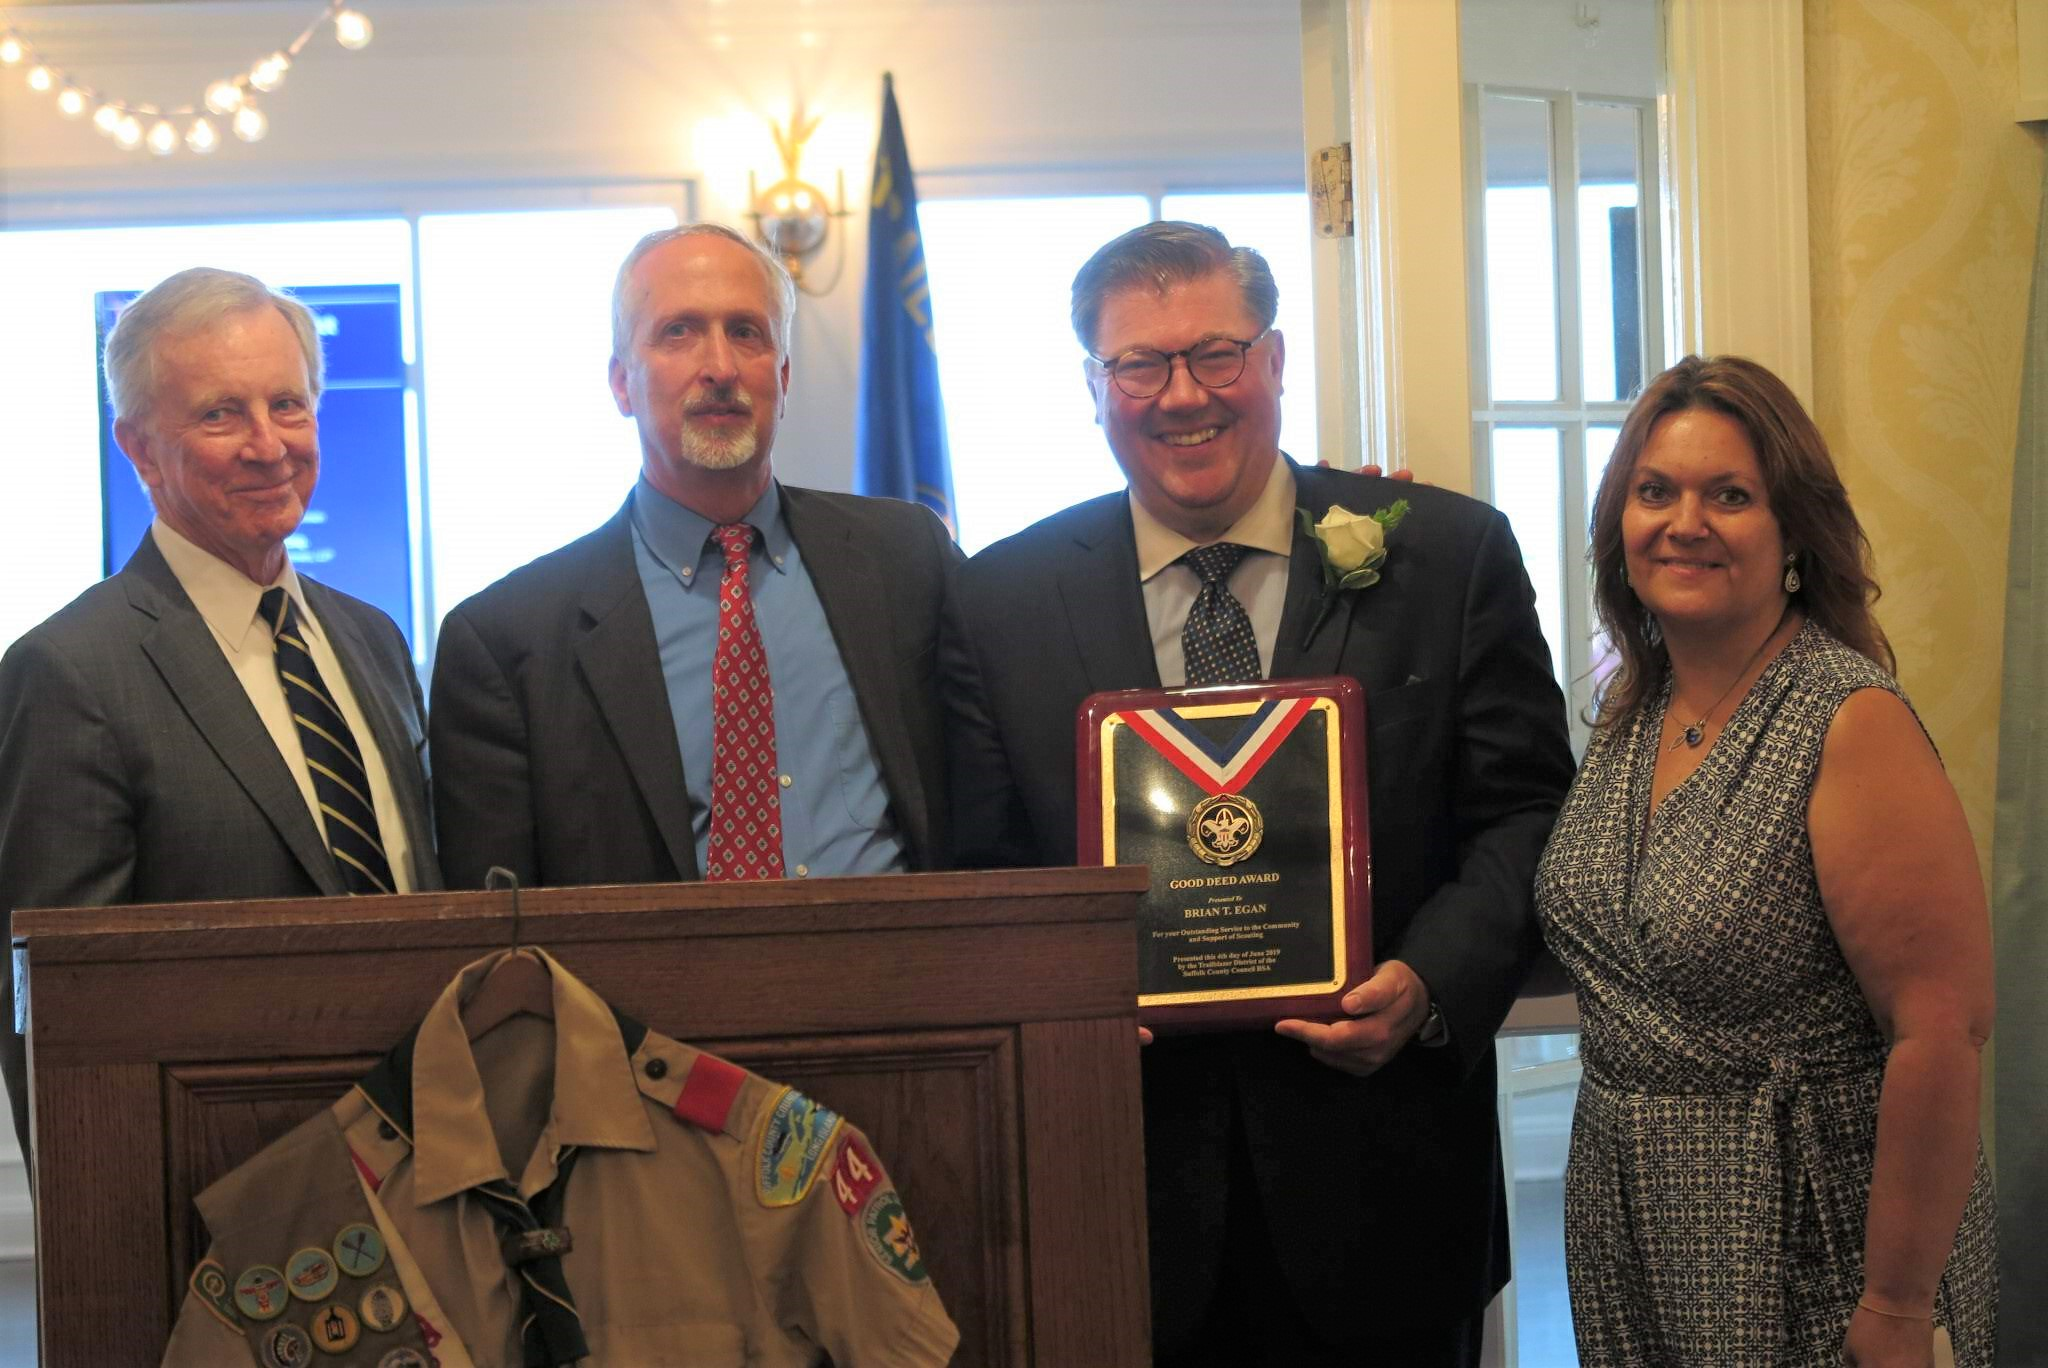 Egan recieves 36th Annual Good Deed Award from Boy Scouts